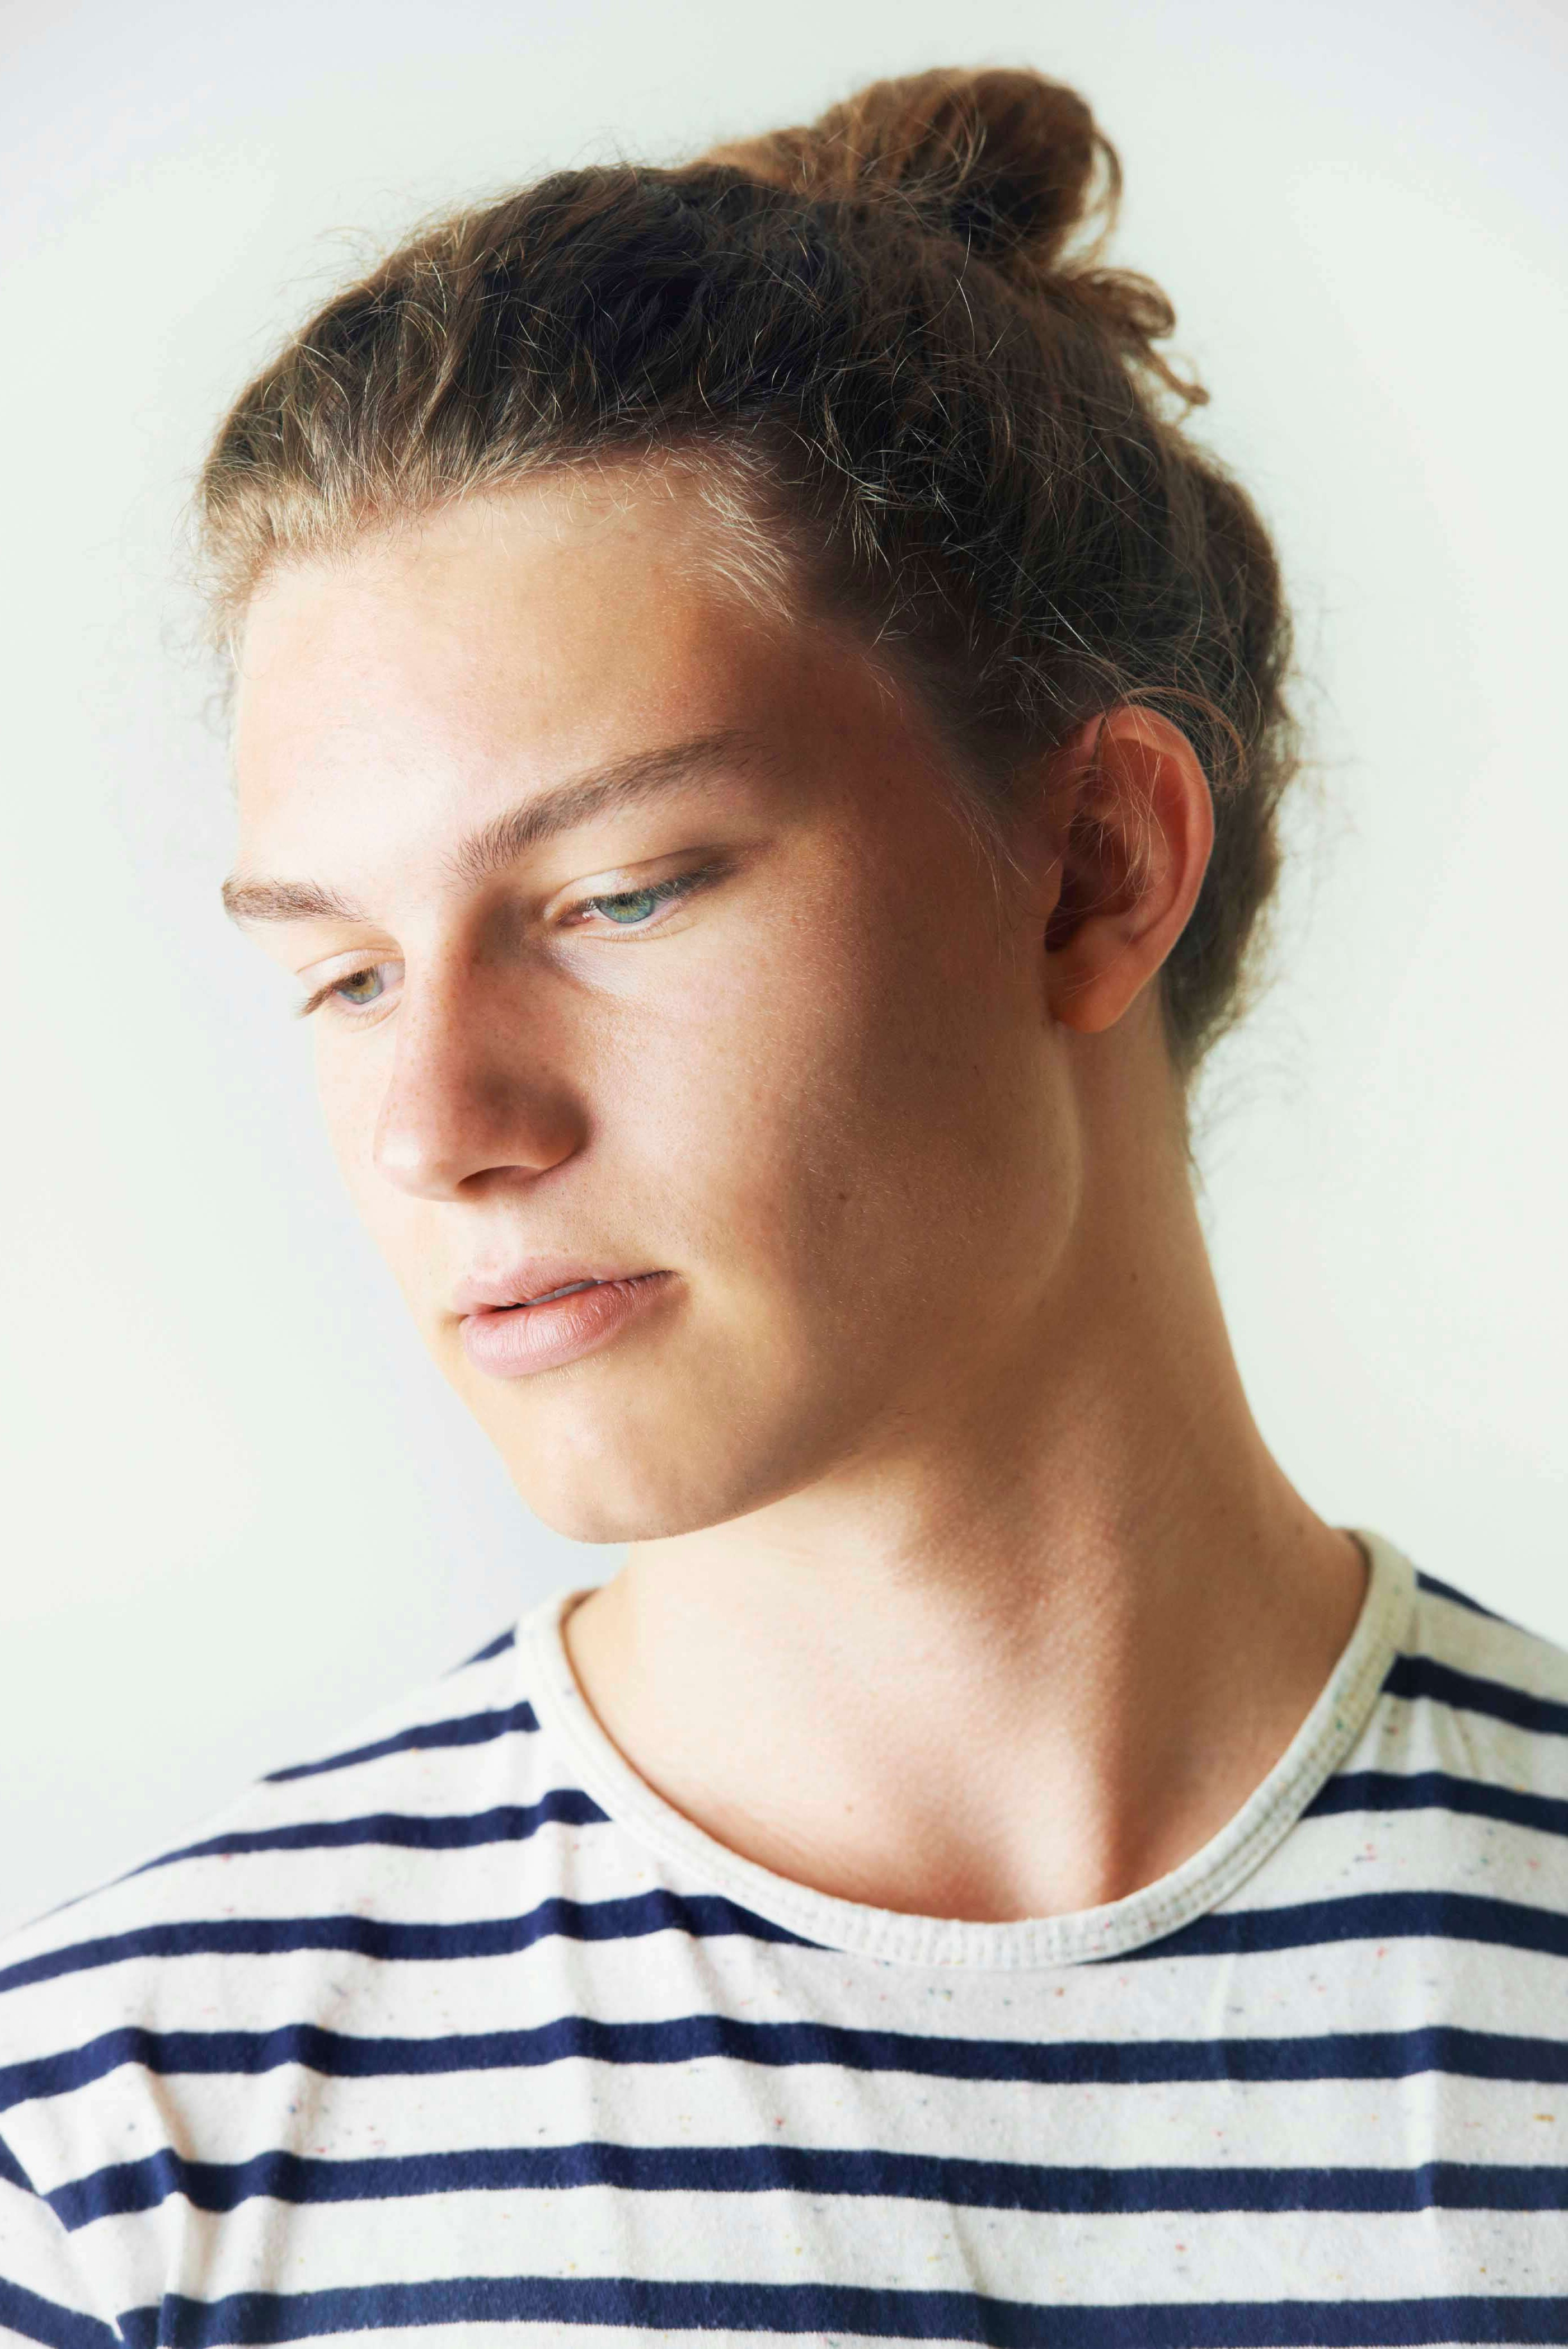 A young guy with a bun.